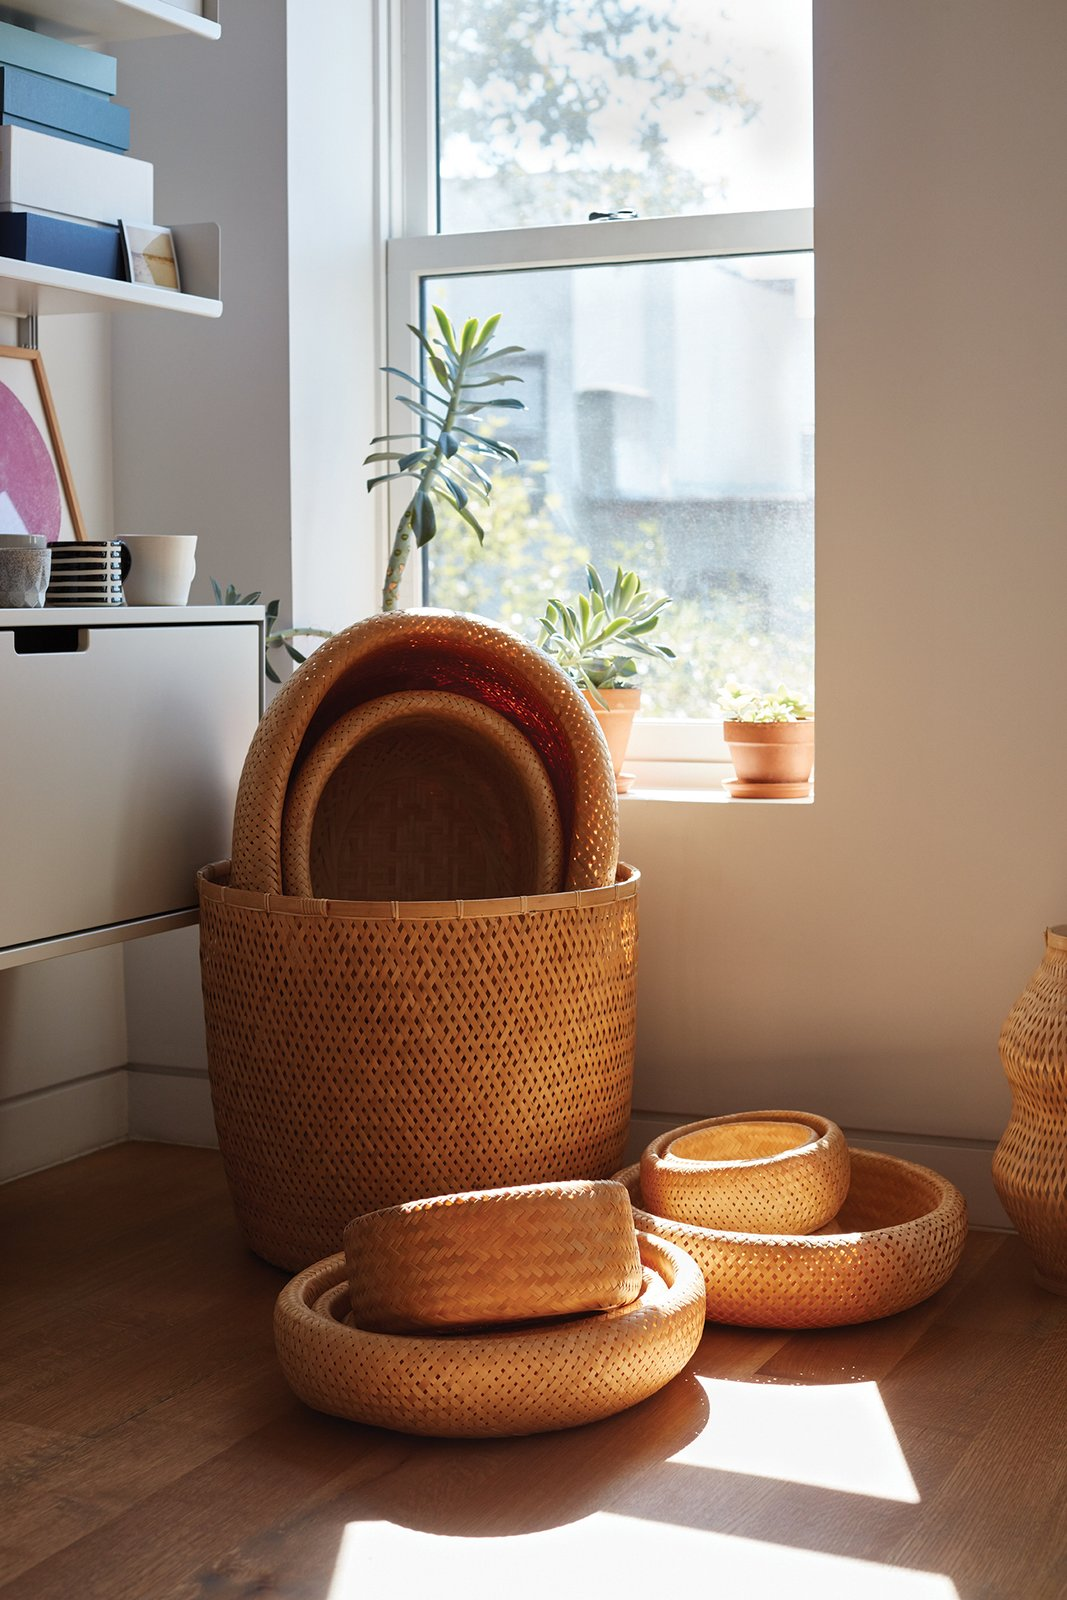 Storage Room and Shelves Storage Type A Vitsœ shelving system and a  collection of bamboo baskets made in Vietnam occupy a sunny corner in the office that Lauren and Keith share on the top floor.  Photo 13 of 16 in Forever Changes